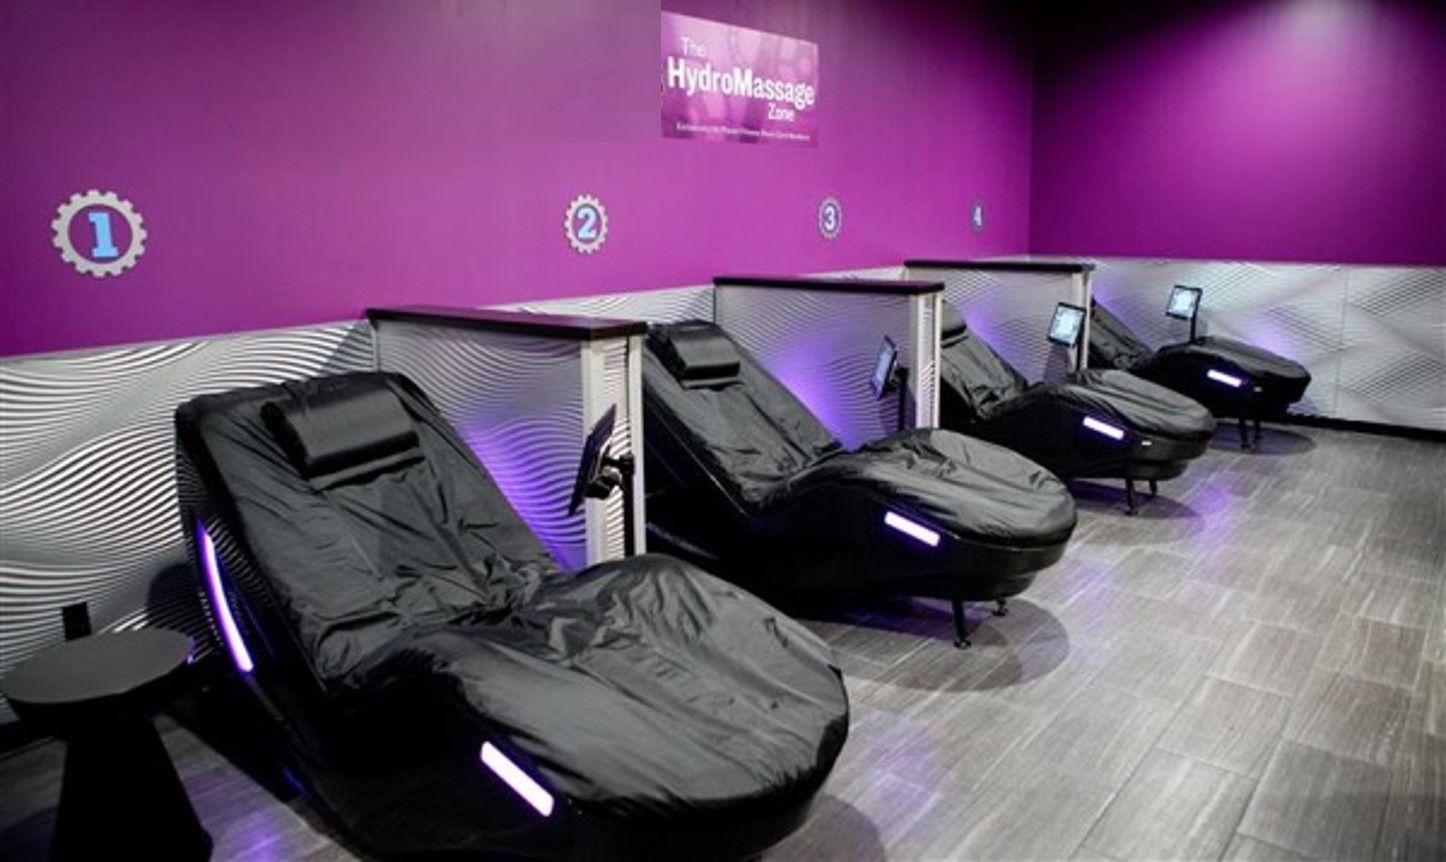 fitness club with four lounges | fitness centers with hydromassage